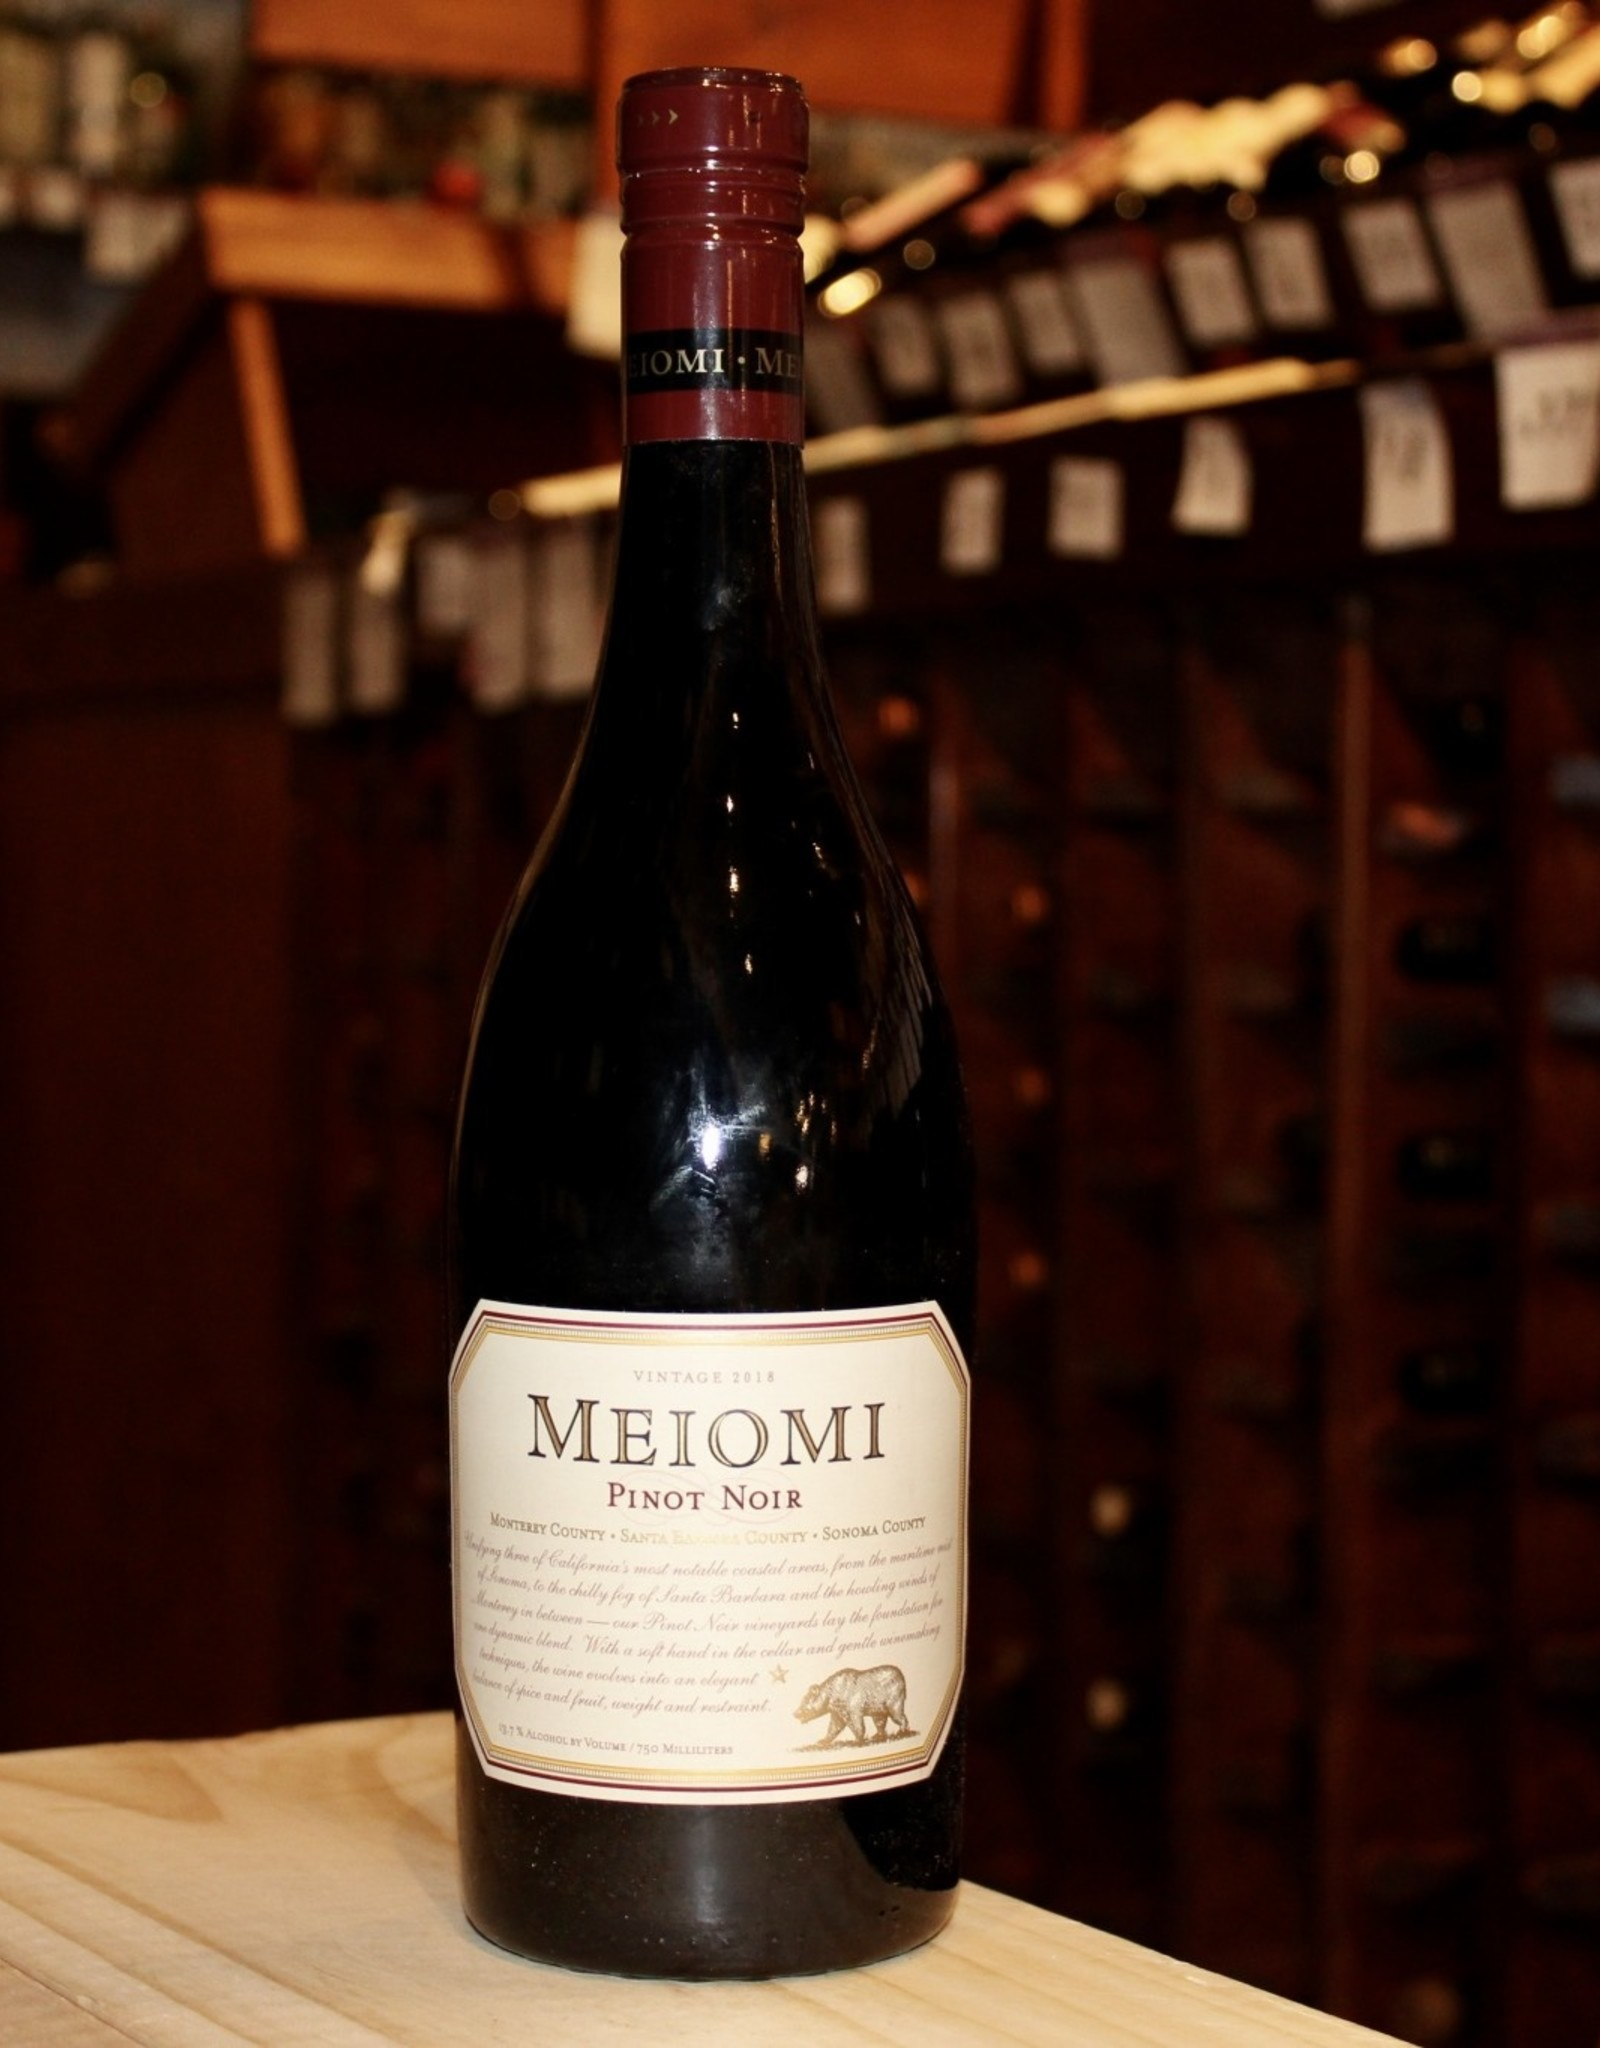 Wine 2018 Meiomi Pinot Noir - California (750ml)